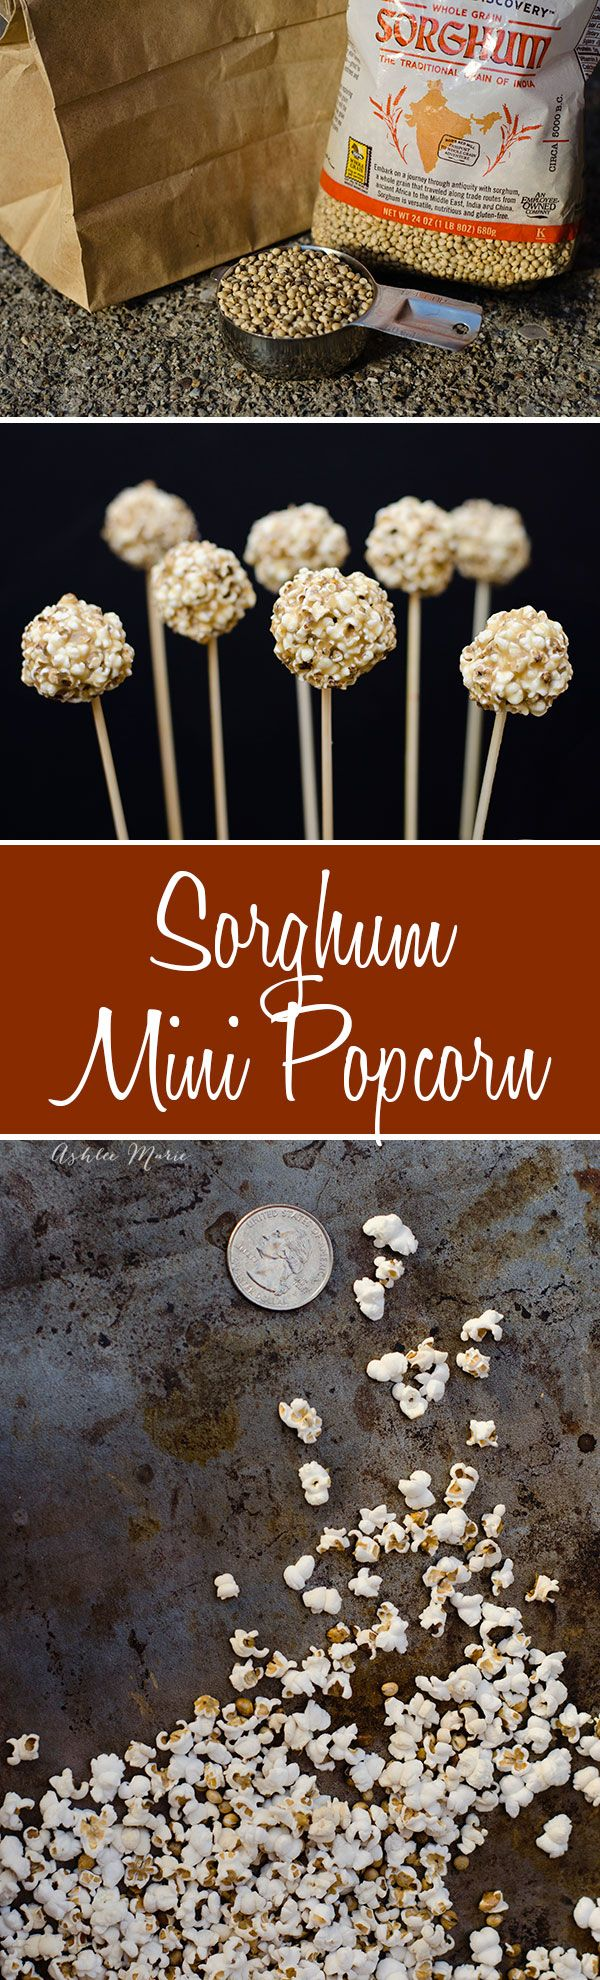 Did you know you can pop more than corn? this Sorghum pops into the most adorable miniature popcorn kernels, barbie popcorn, and you can make super cute mini popcorn balls with it